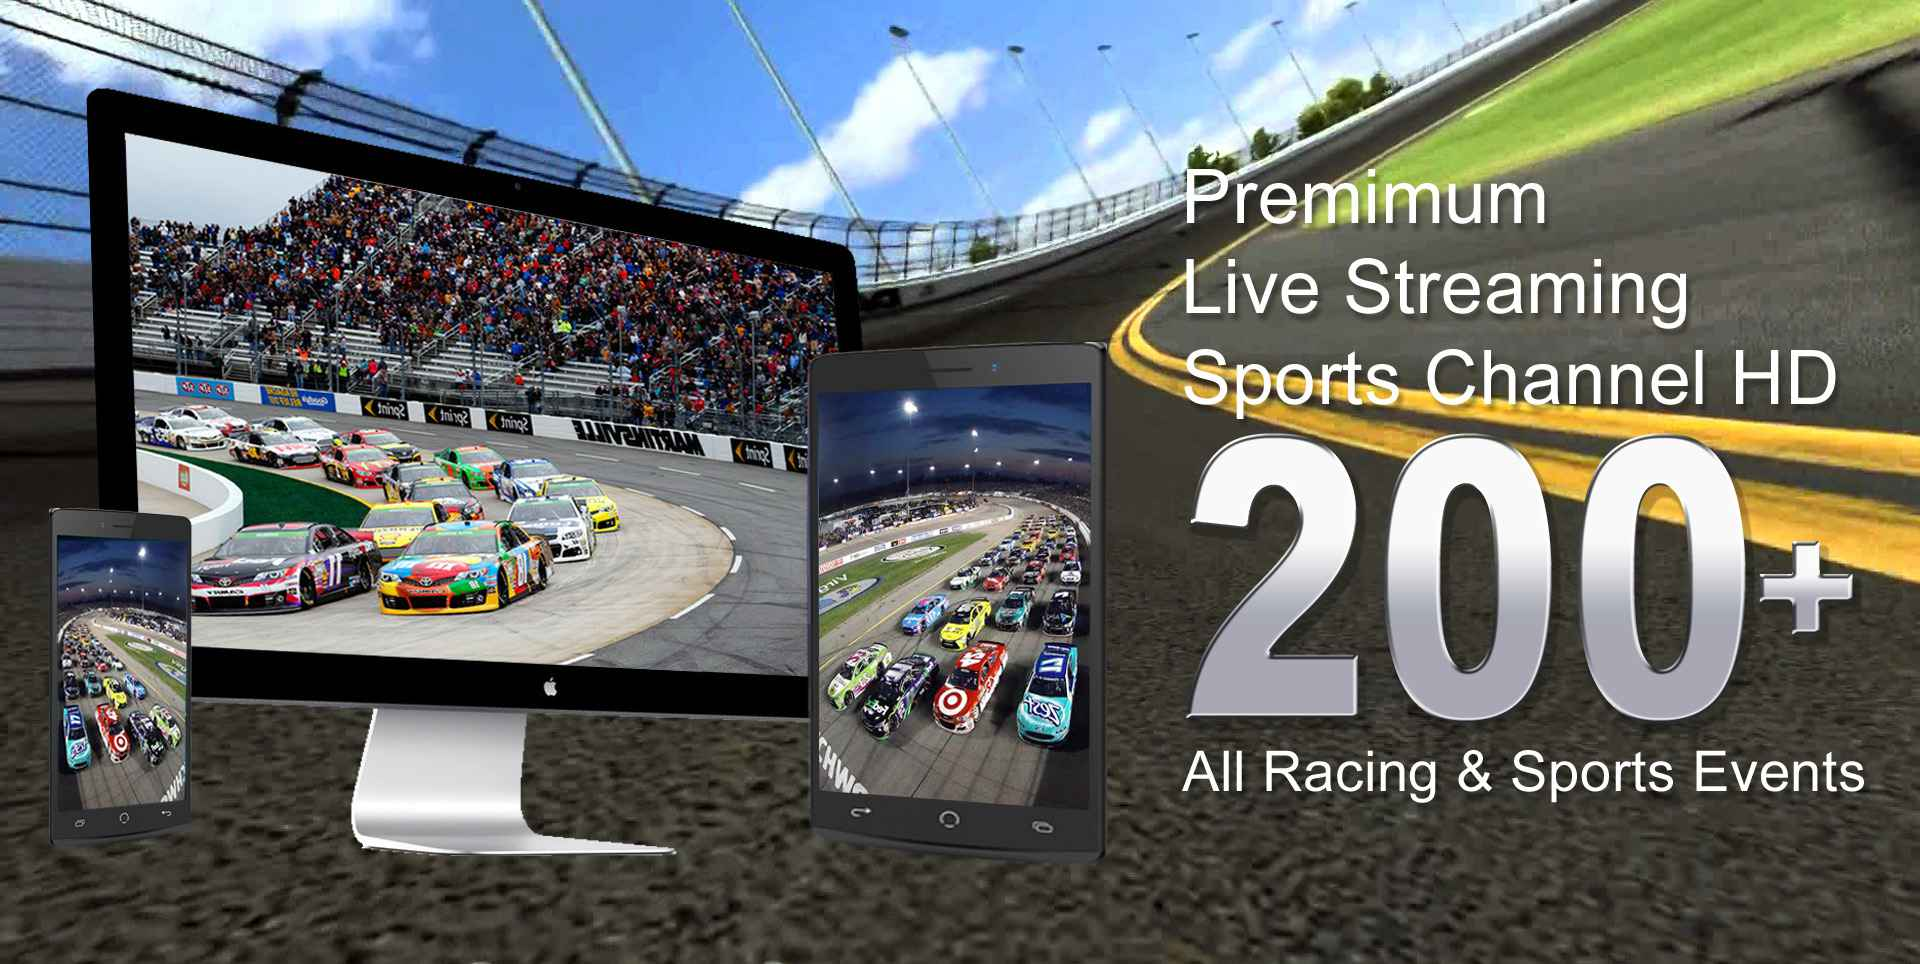 Nascar Pocono 400 Race 7 June 2015